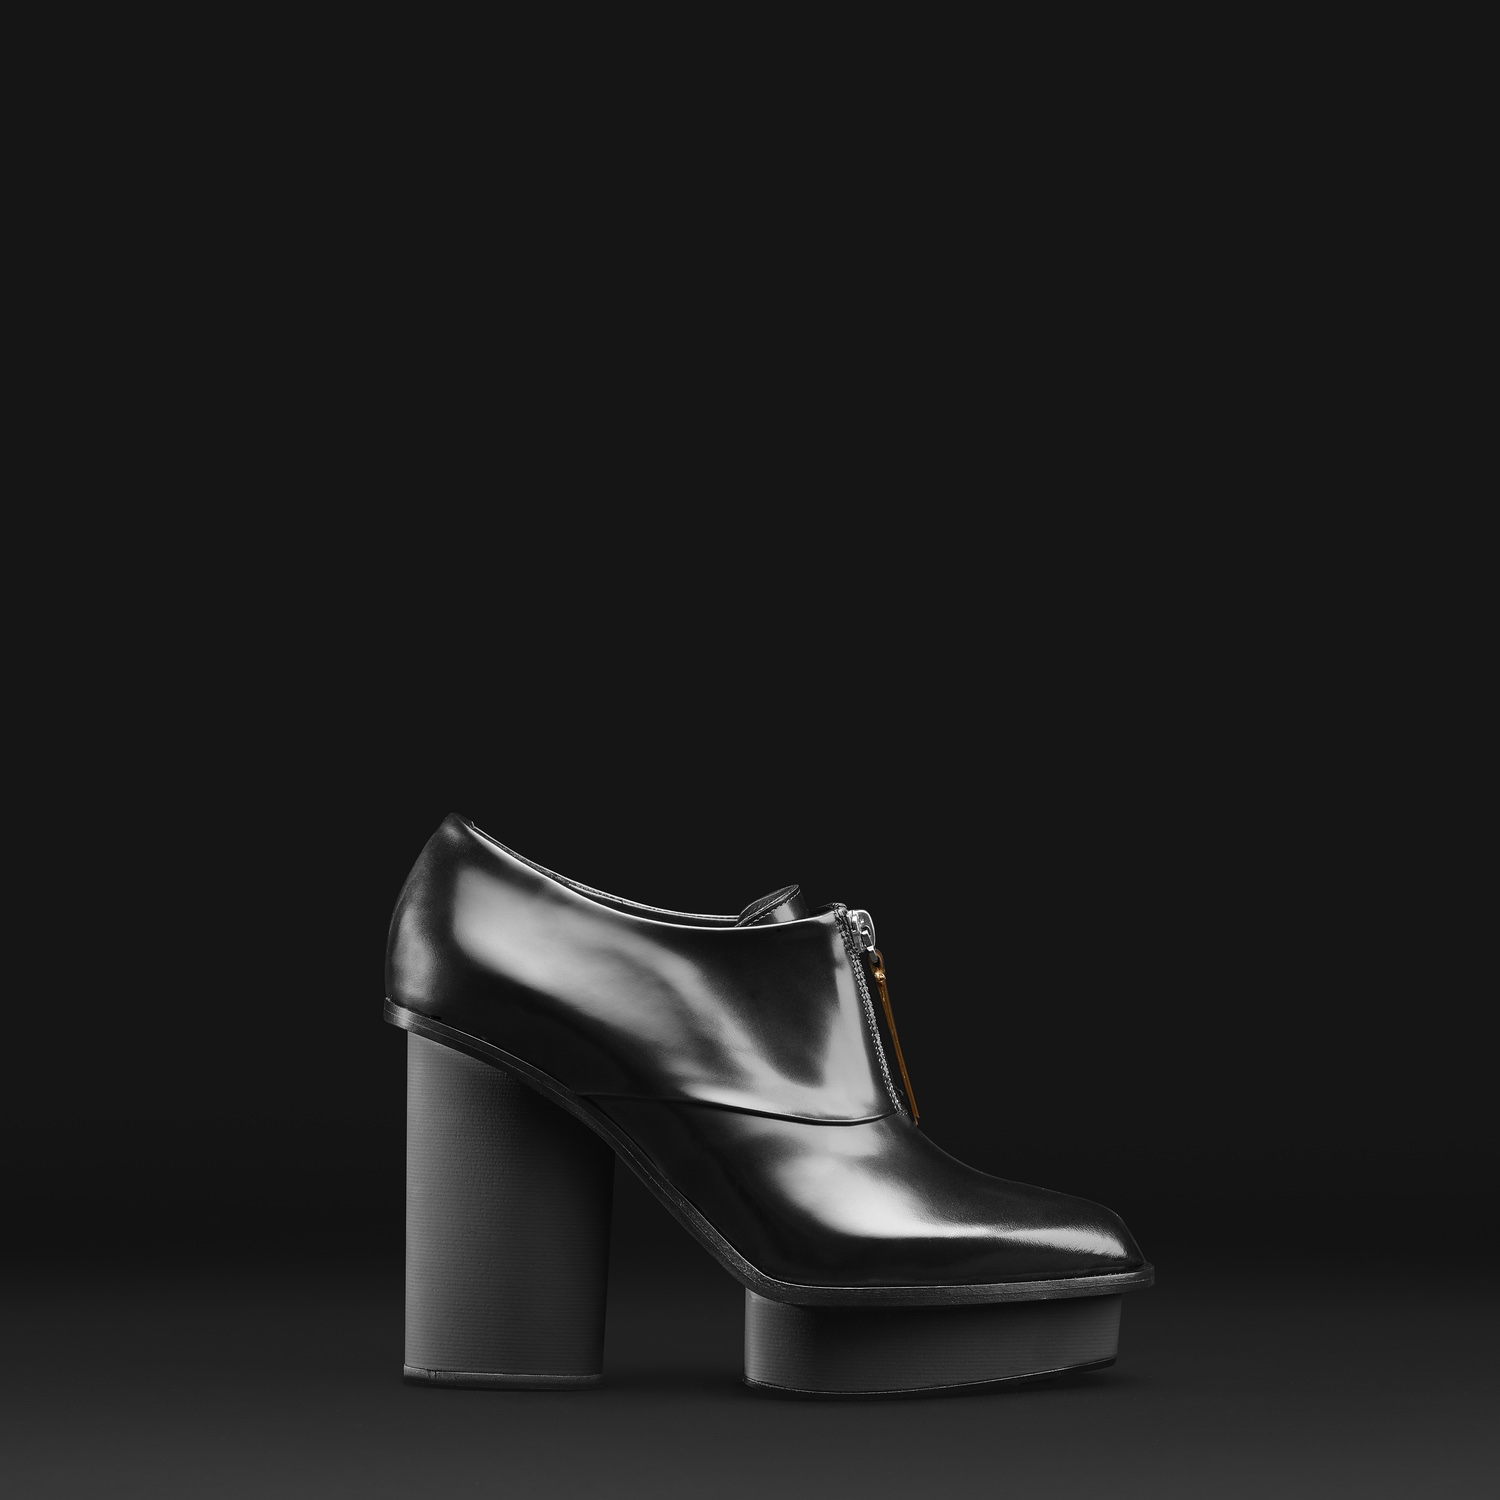 ALAINTONDOWSKI_FALLWINTER2015_SHOES_AT024-B